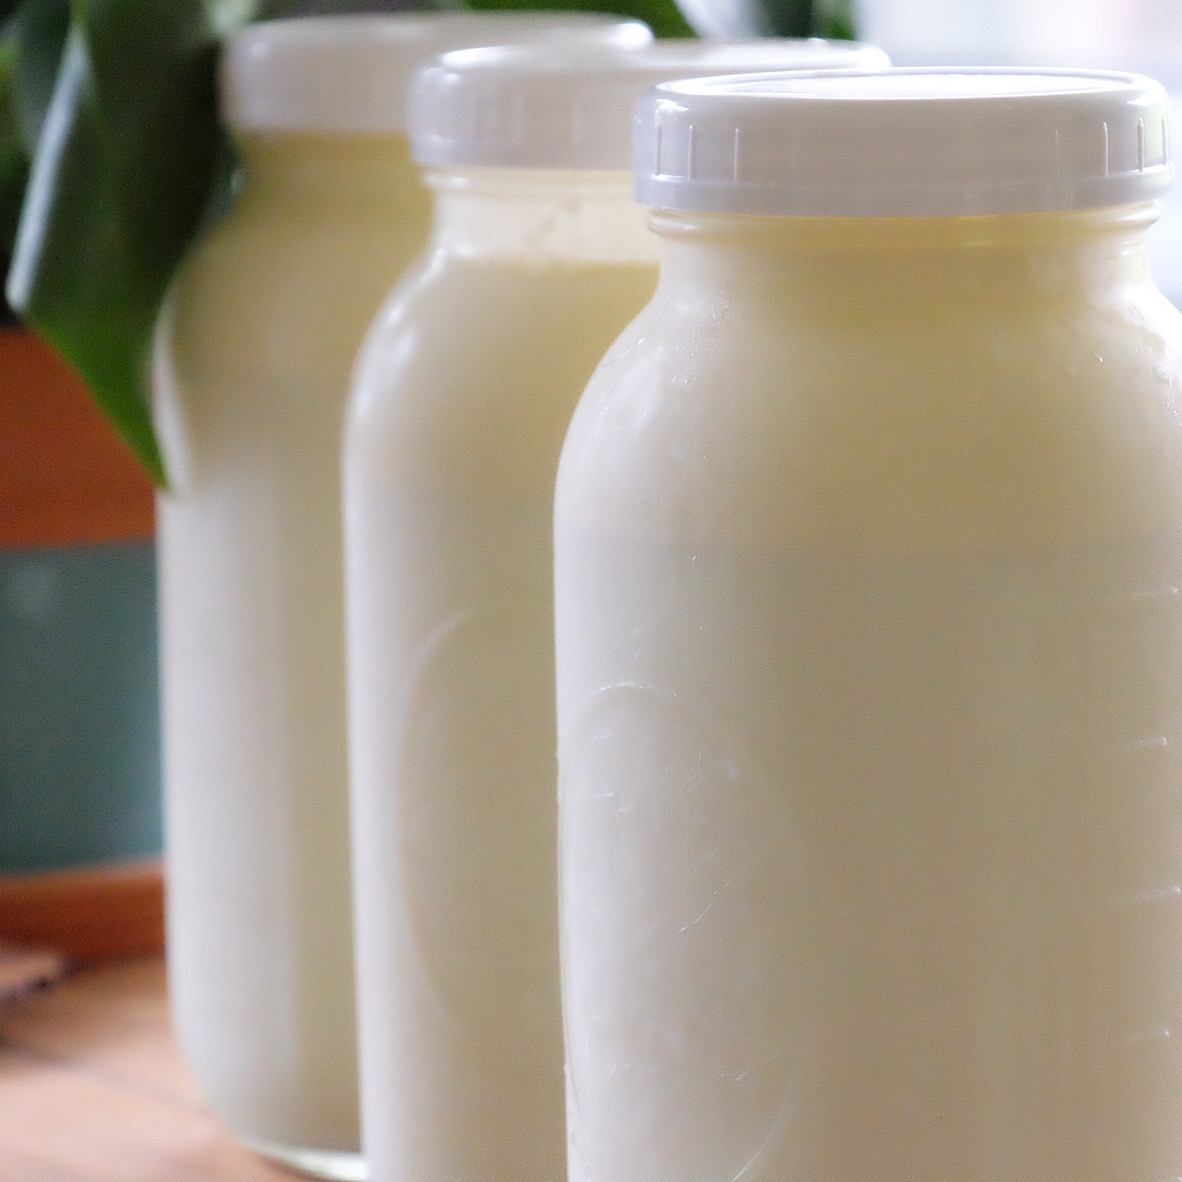 1 1/2 gallons of raw milk from my cow share! after 2 years dairy free, i discovered raw milk as an exceptional tool in my healng process, and still to this day drink 2 gallons a week all by myself.